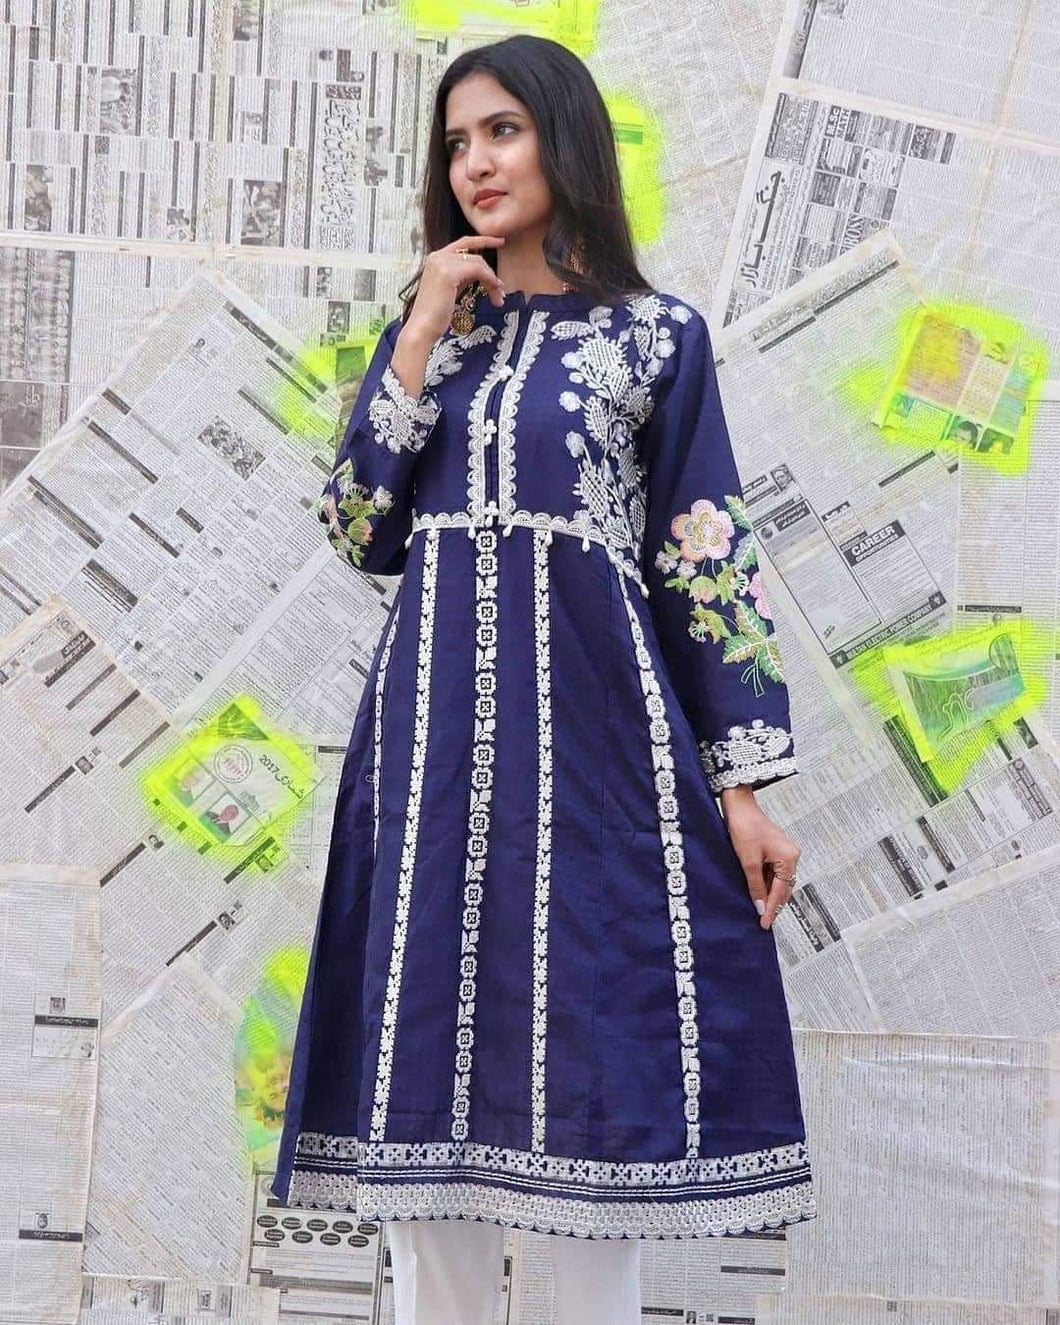 Self jacquard embroidered long frock